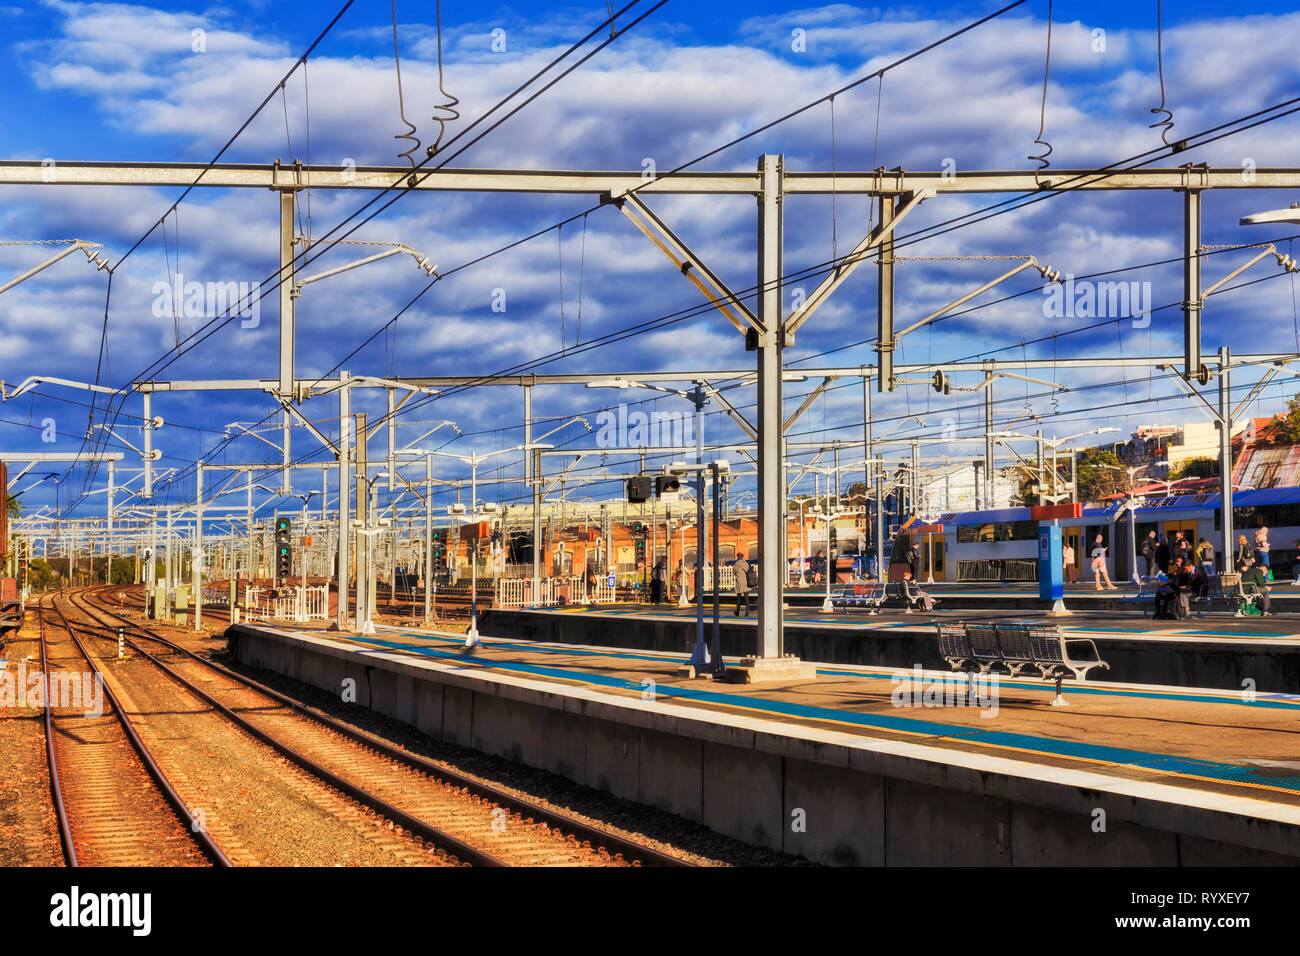 Platforms of Redfern train station in Greater Sydney with daily commuters and city visitors boarding and aligting from the train on open platform unde - Stock Image